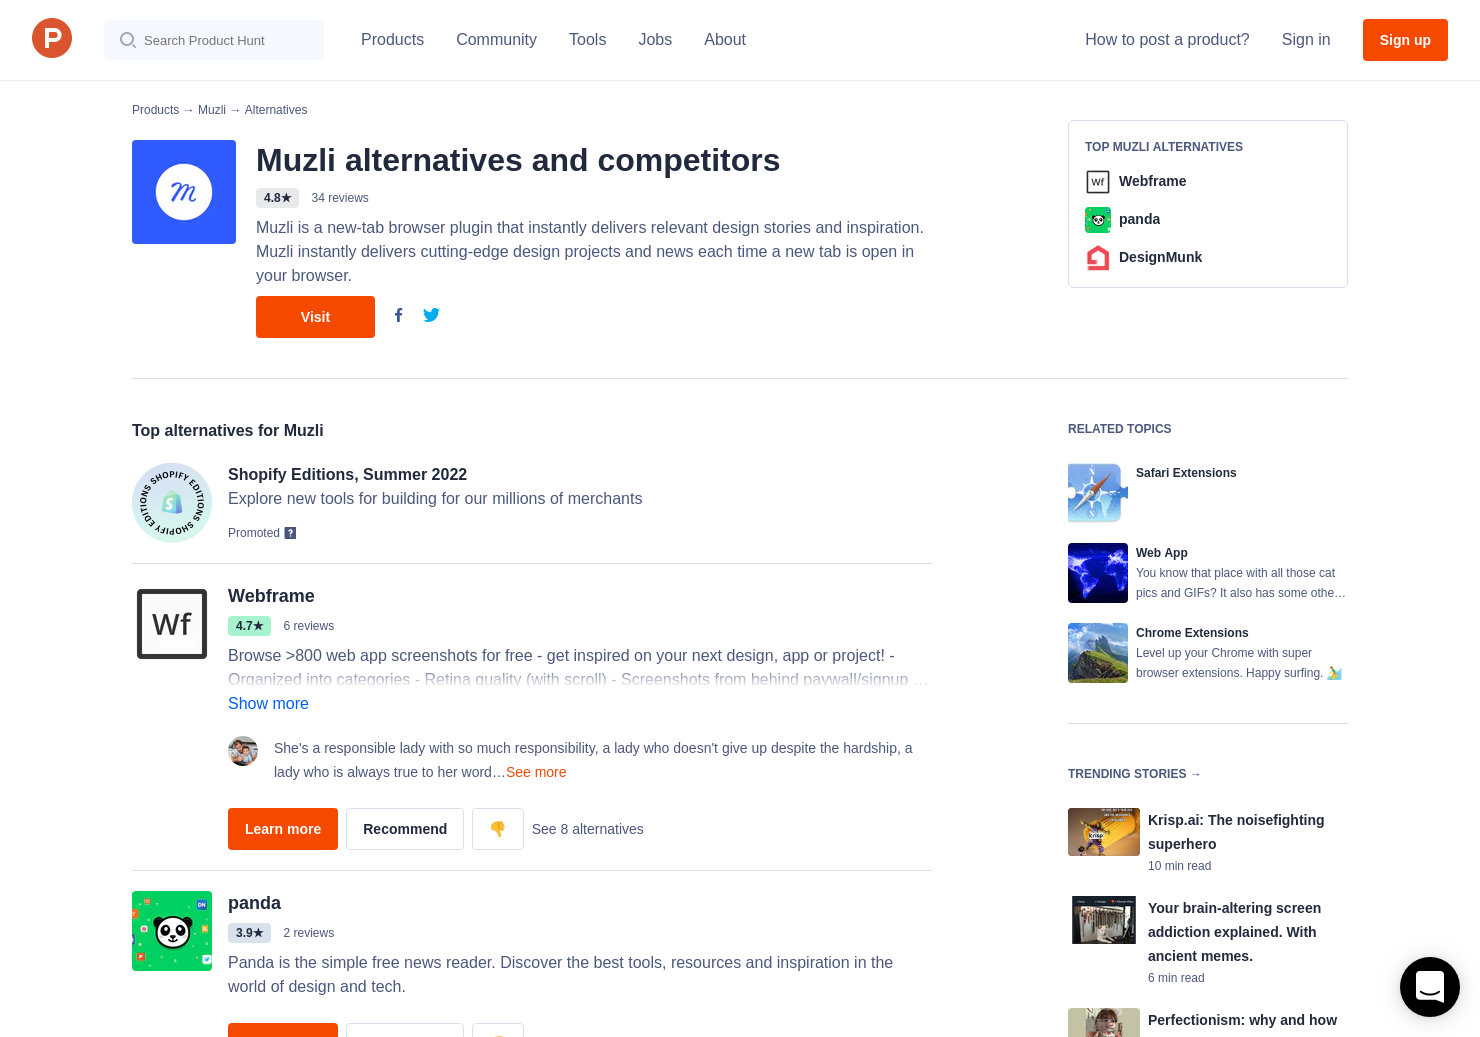 Dropmark Extension 28 alternatives to muzli 2 for chrome extensions | product hunt